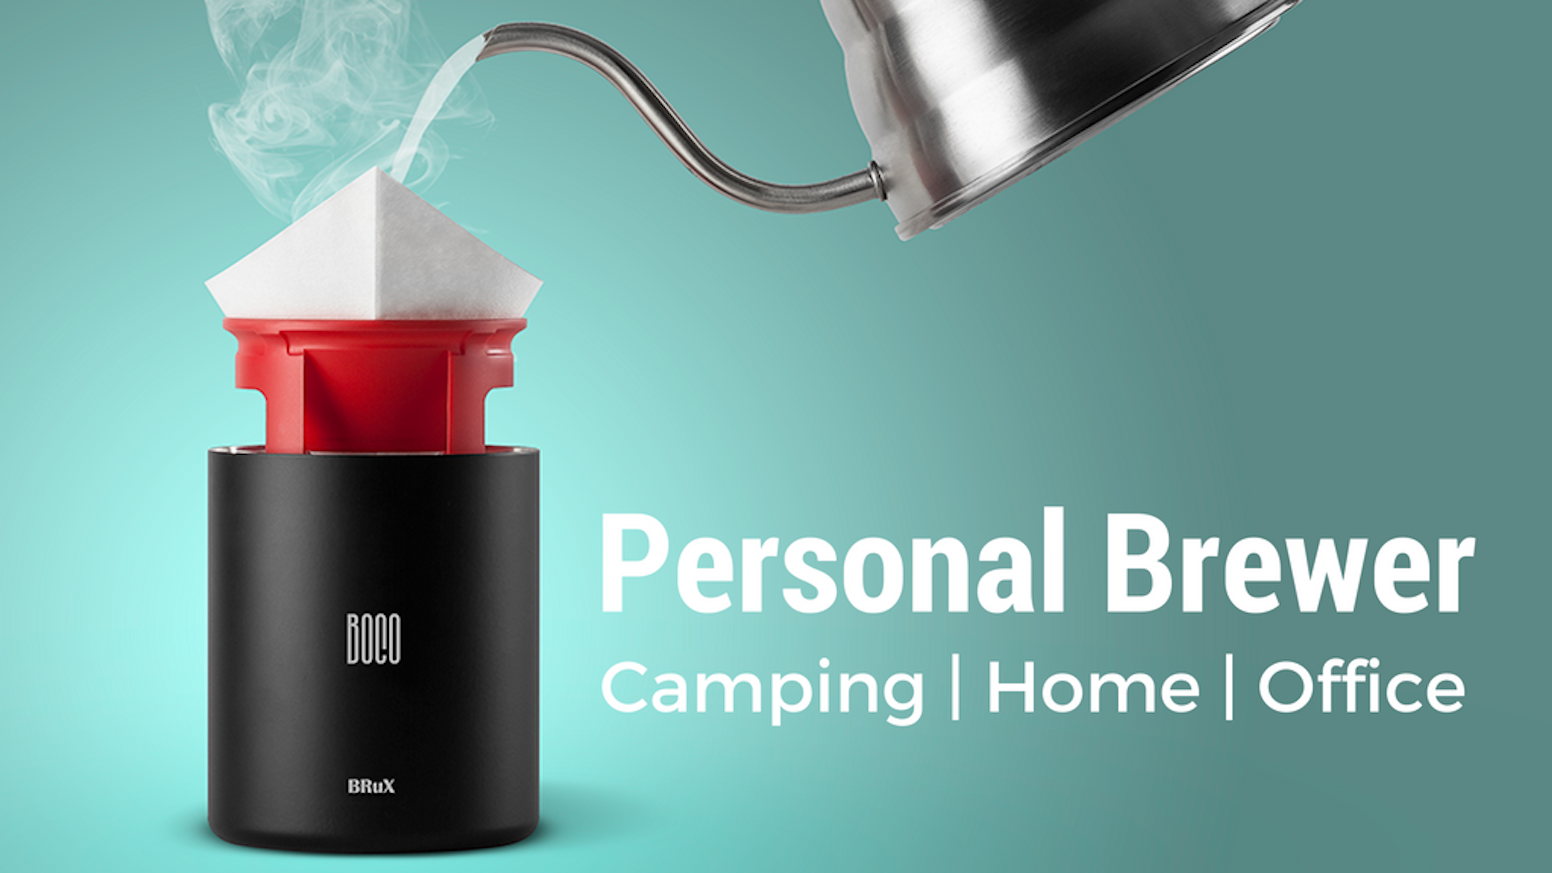 Minimalist bottle that brews ridiculously good coffee for those on the go.